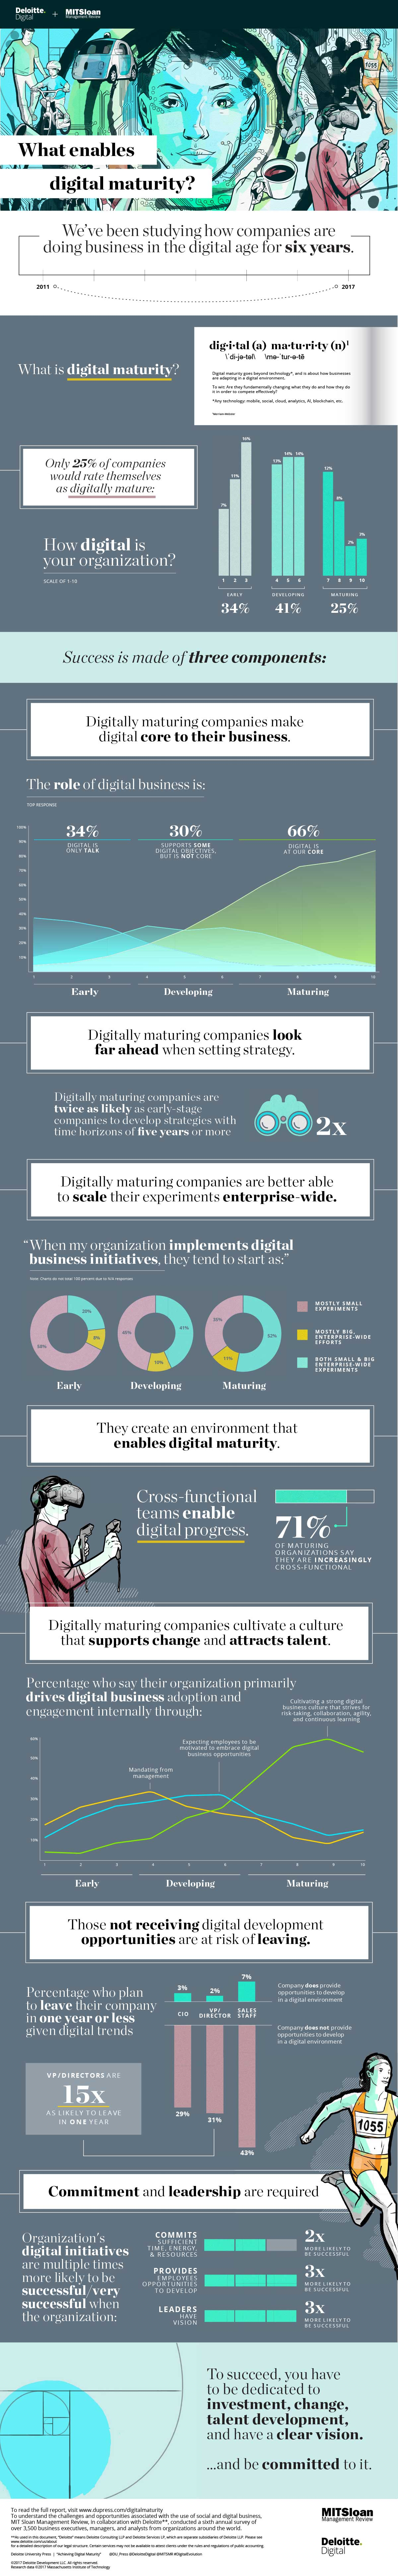 2017 Digital Business Report Infographic